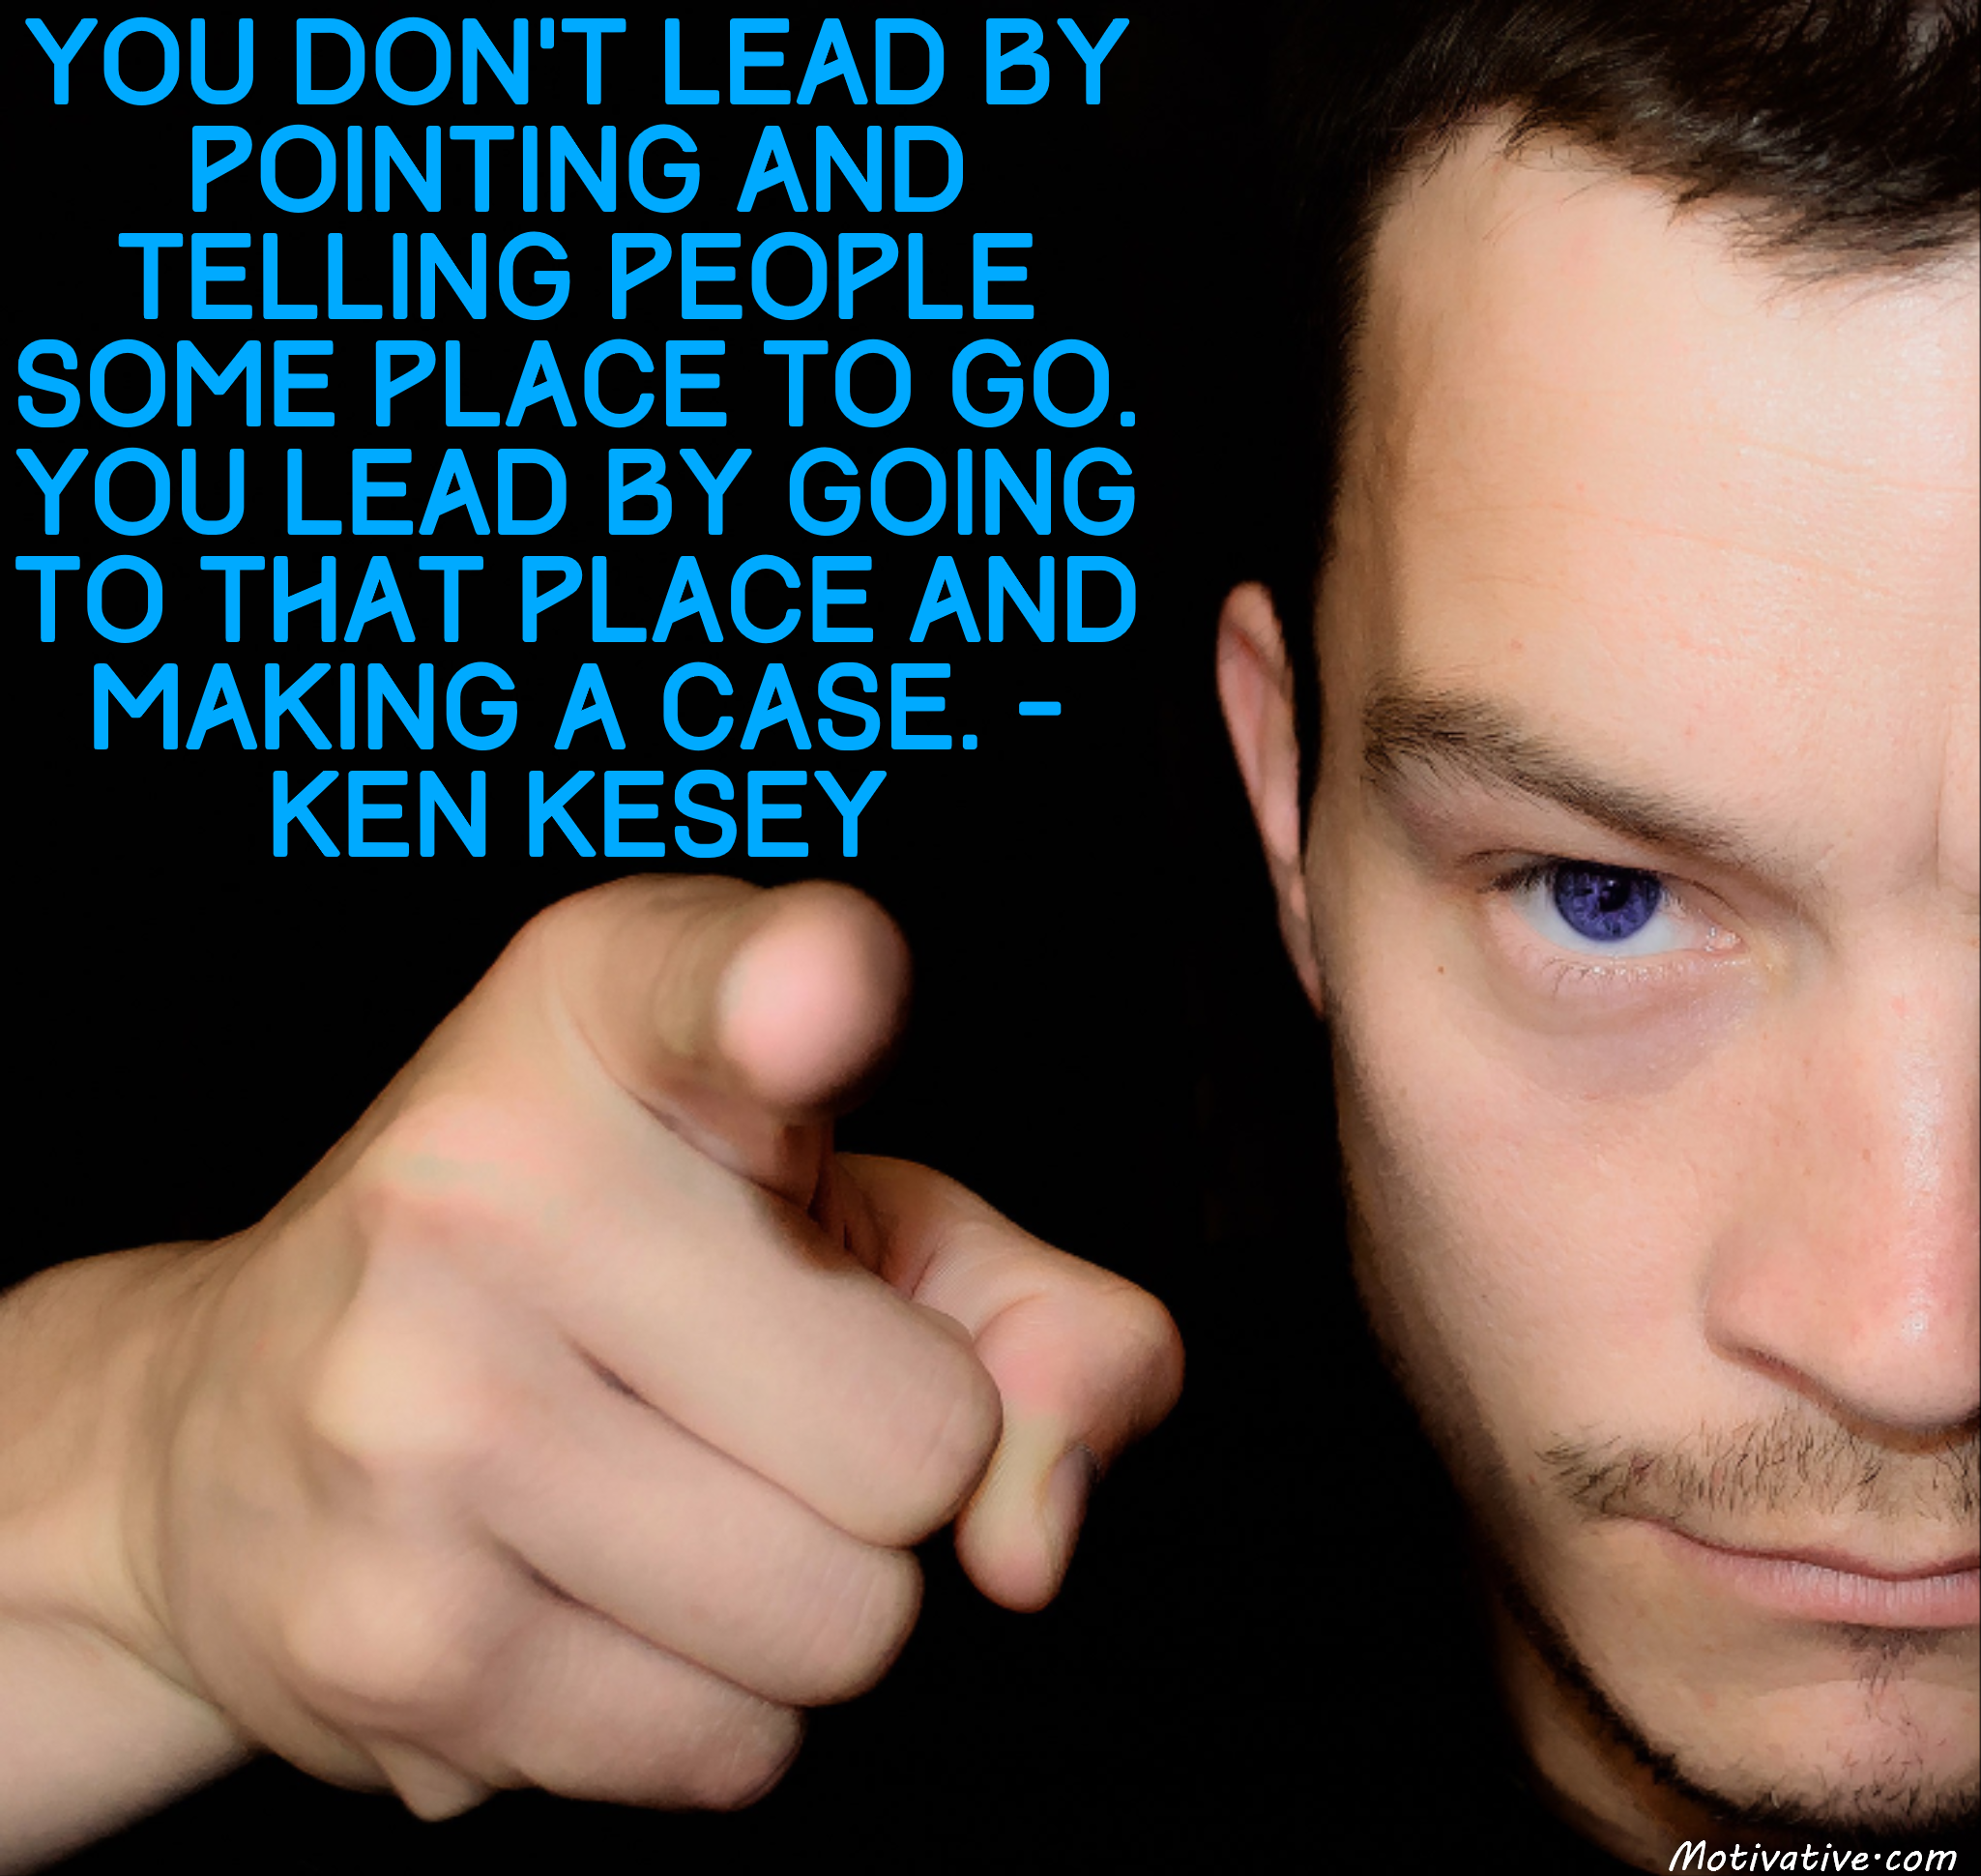 You don't lead by pointing and telling people some place to go. You lead by going to that place and making a case. – Ken Kesey